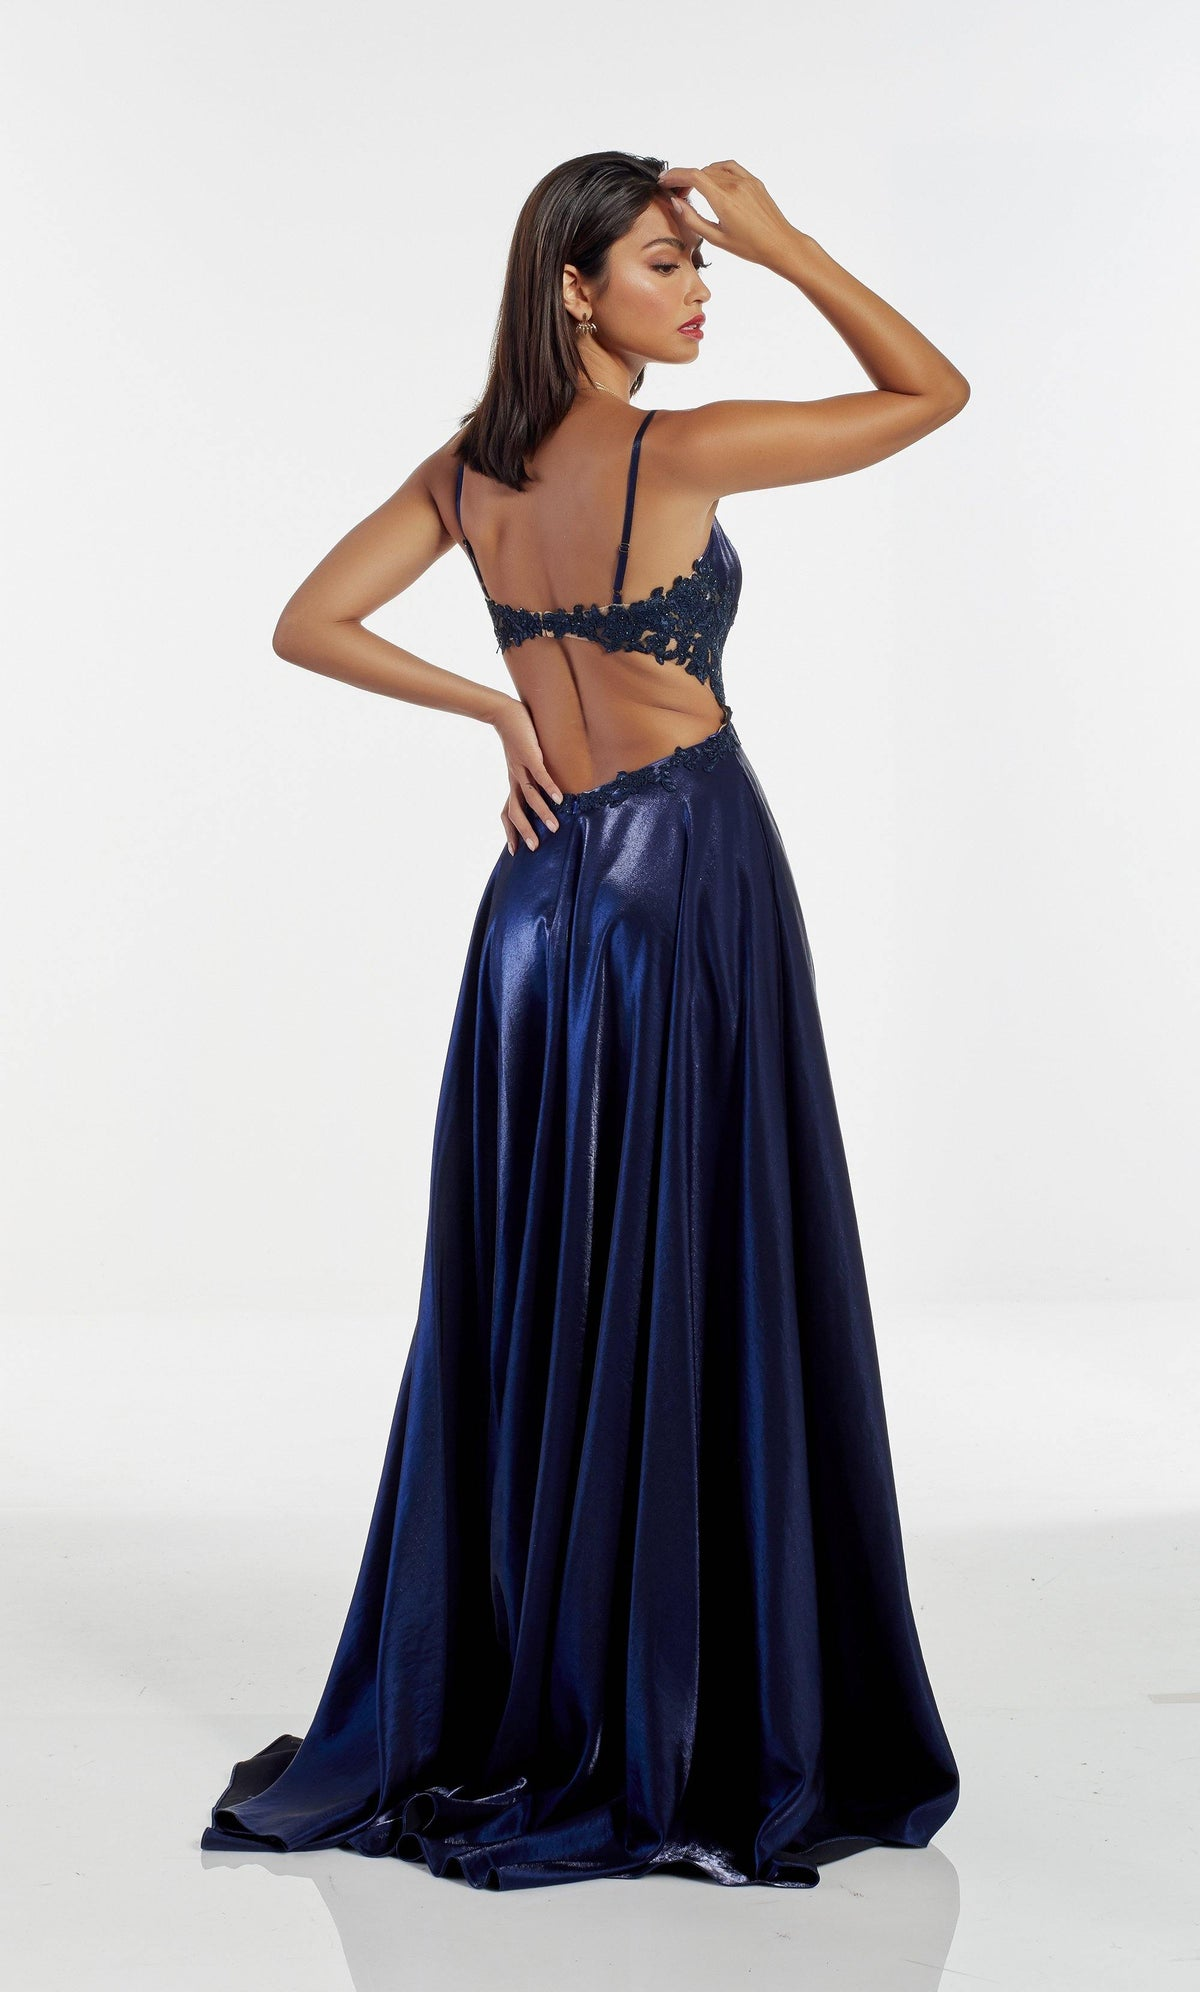 Midnight Blue prom dress with a keyhole back, lace side detail and train